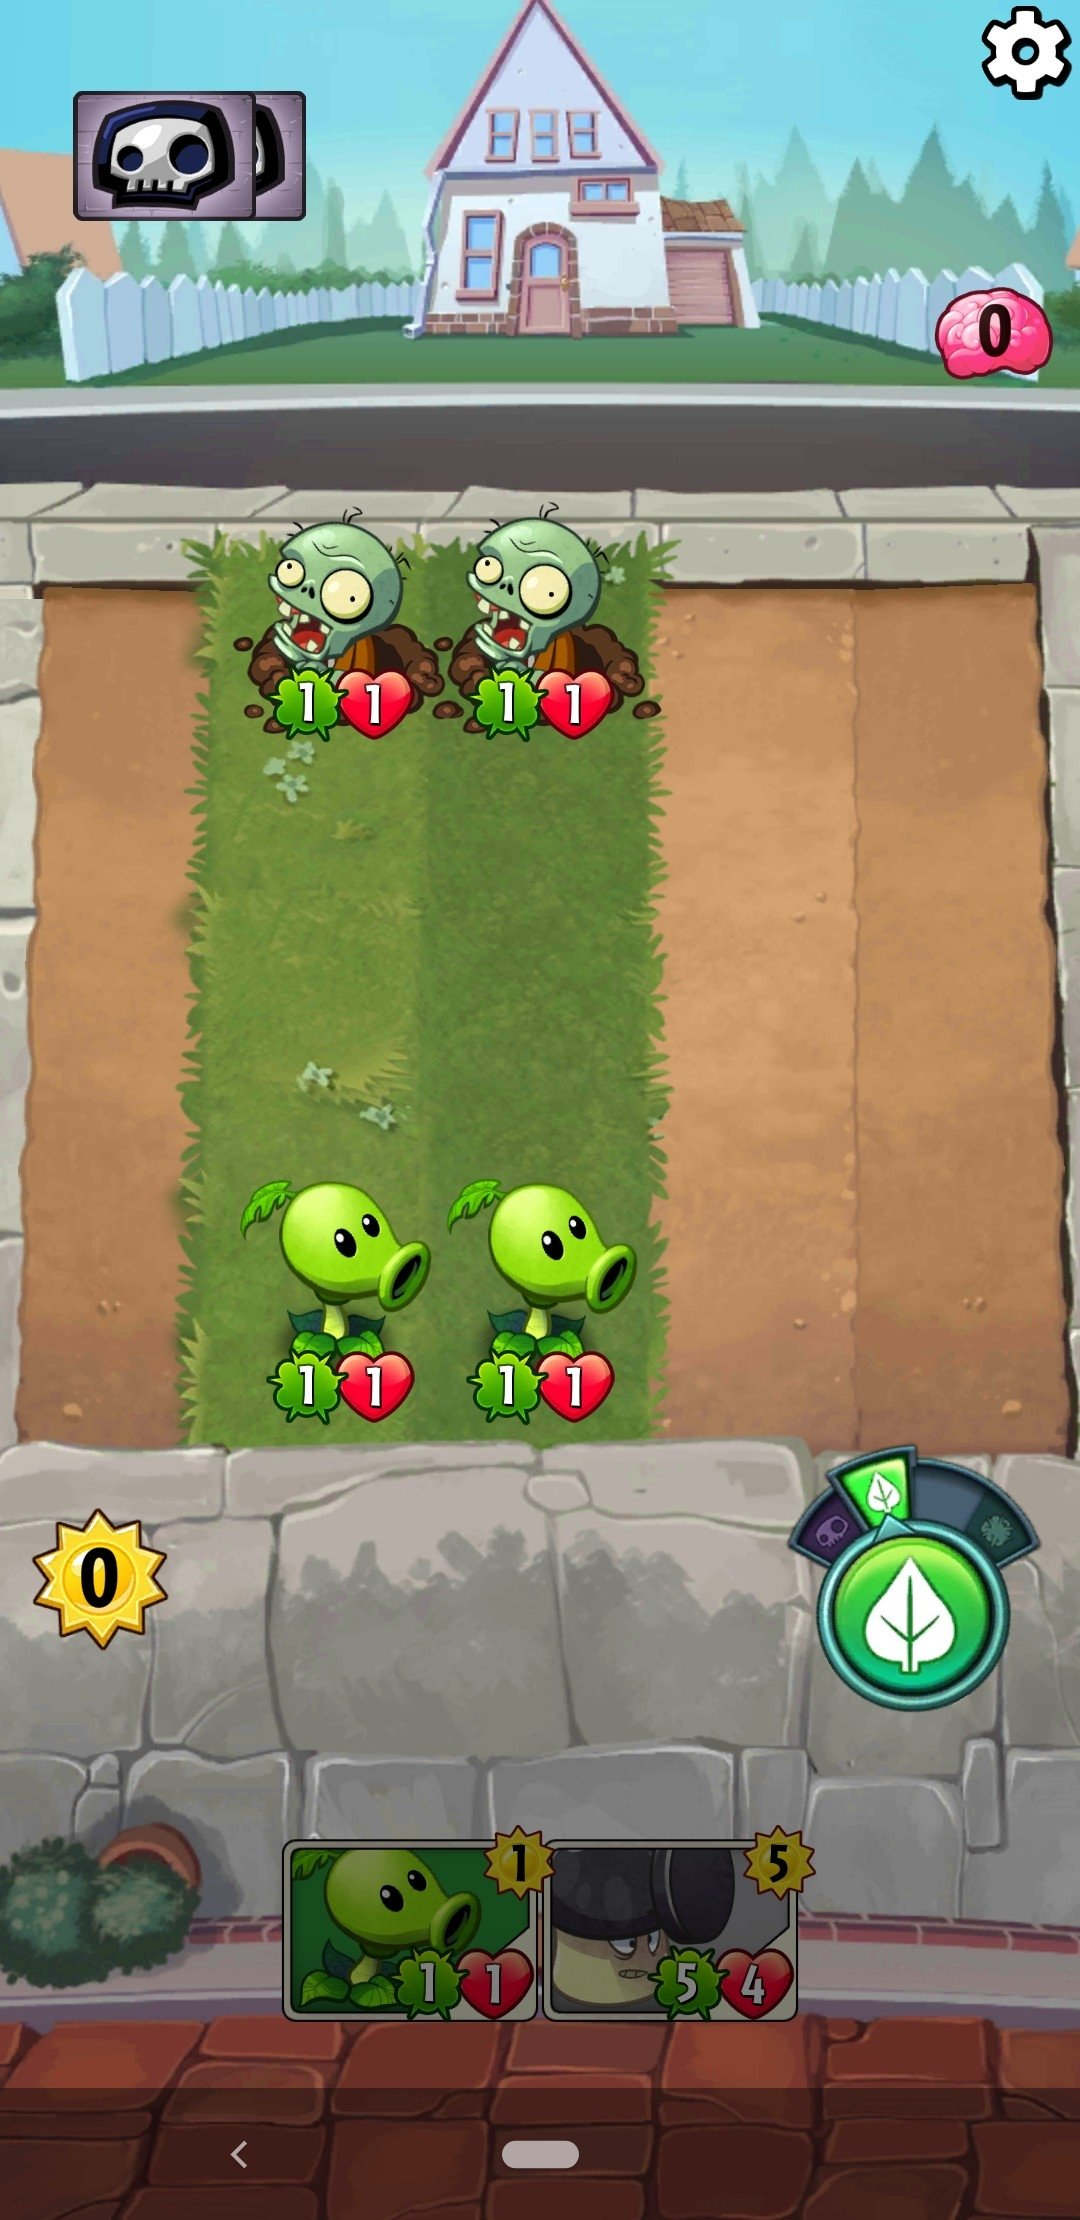 Green shadow plants vs zombies heroes rule 34 porn - 5 6